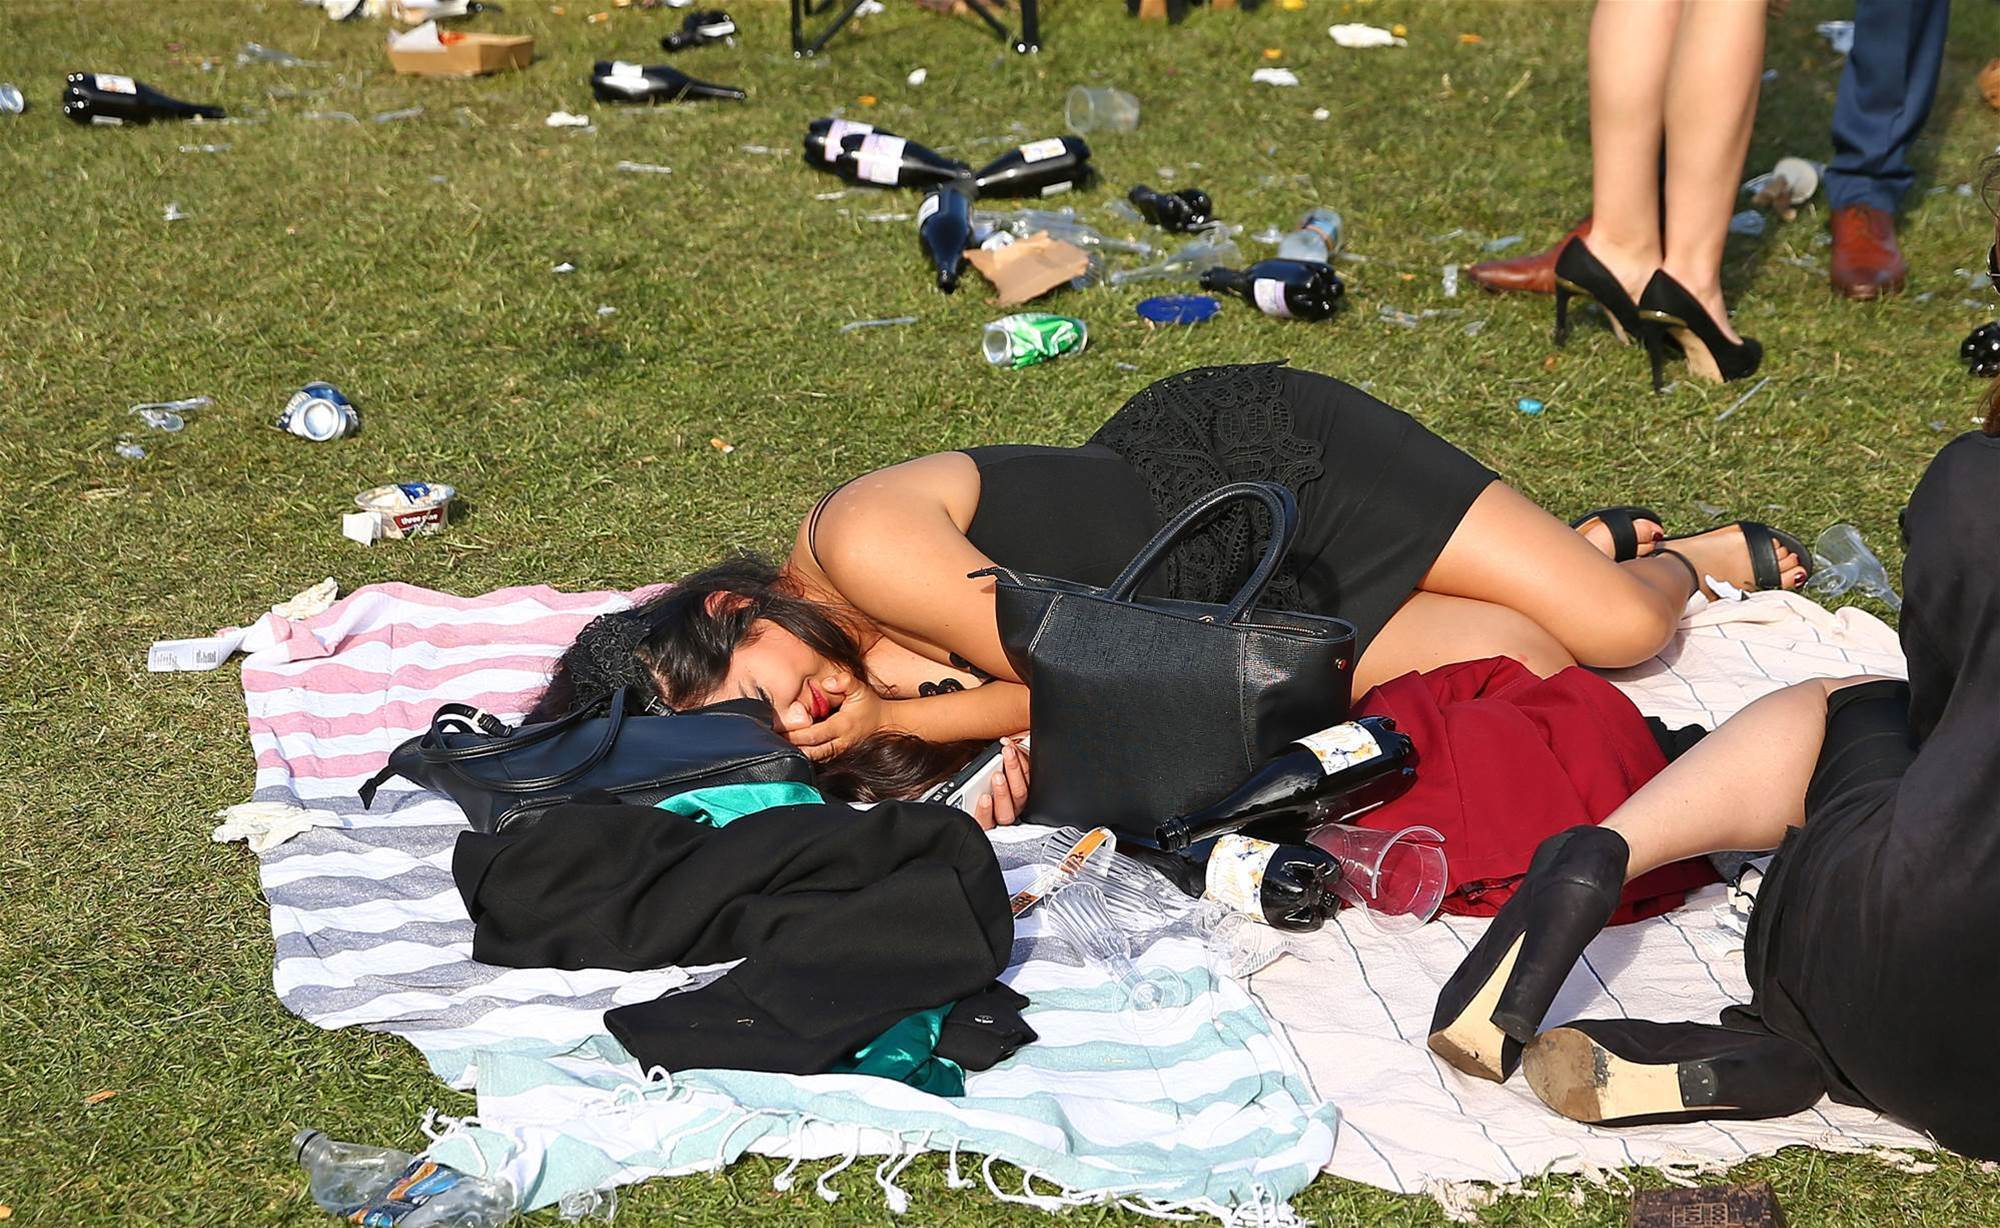 Pic special: The worst photos of the Melbourne Cup